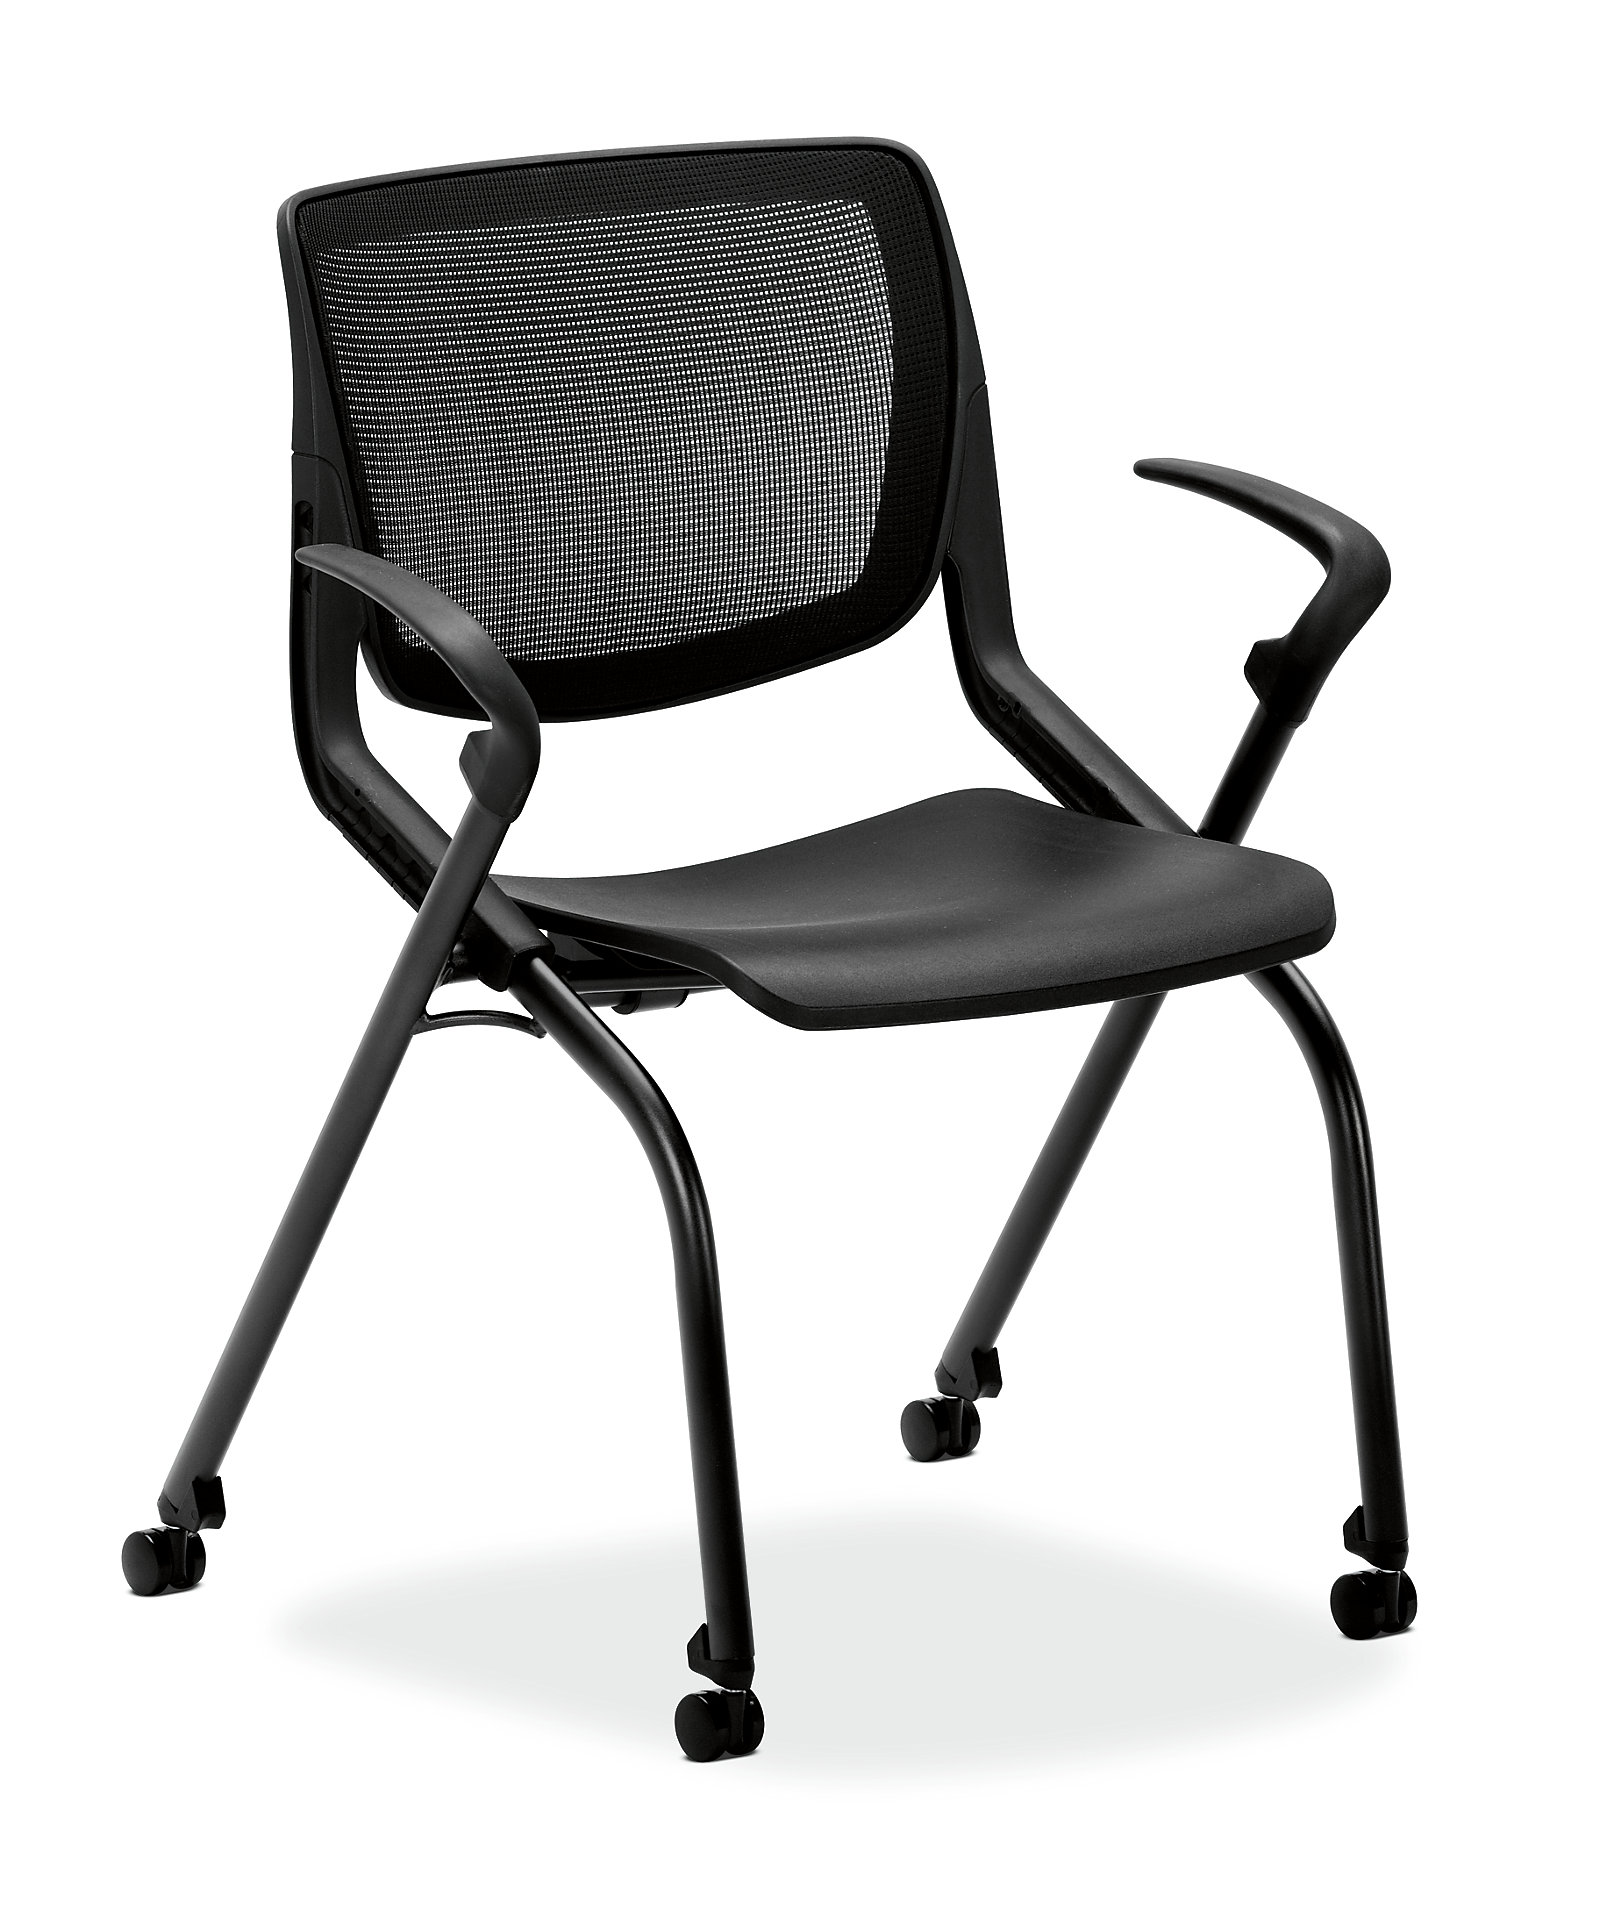 Motivate Stacking Chairs HMN1